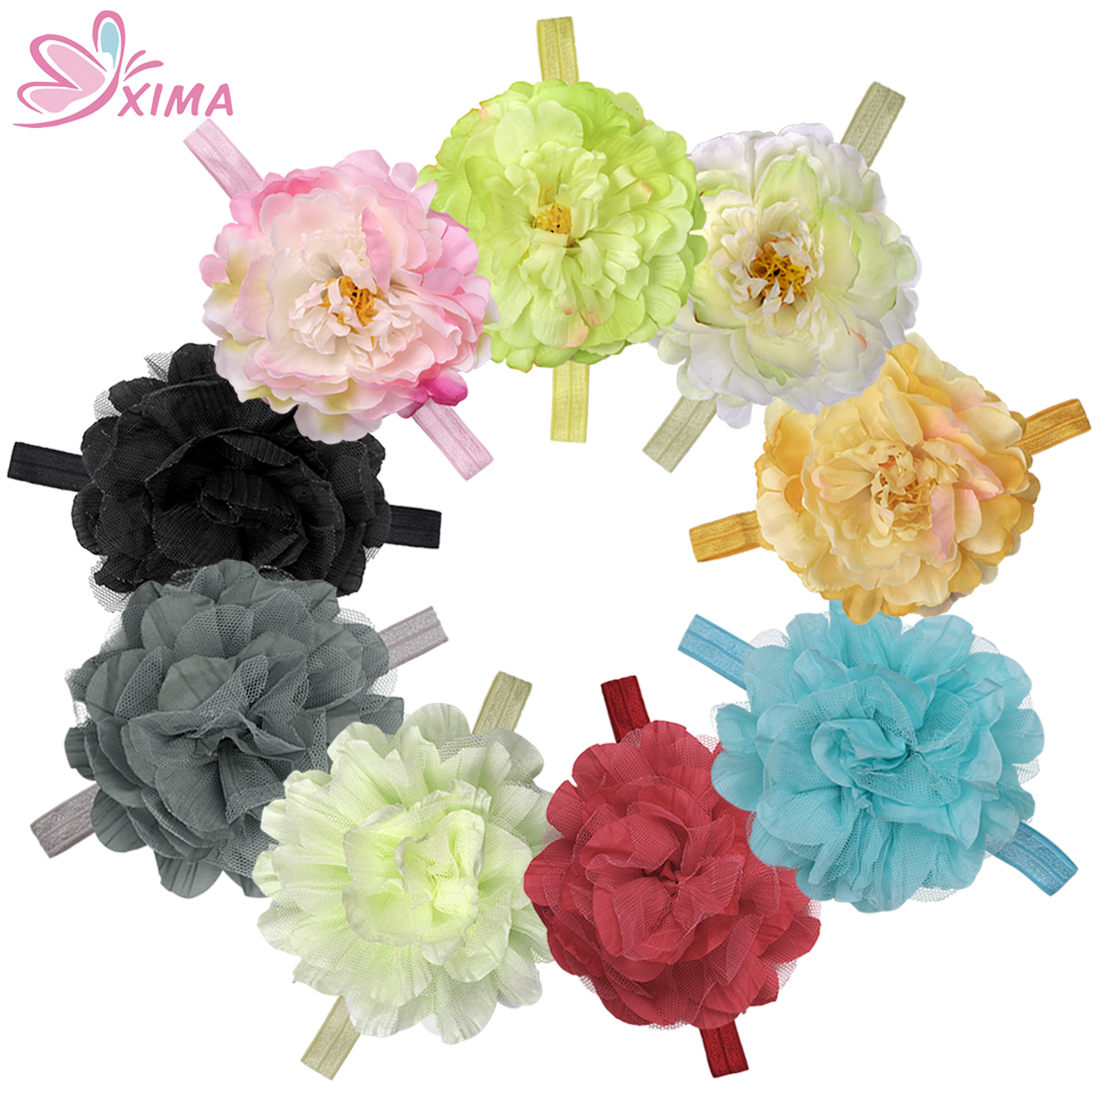 Online get cheap fake hair flowers aliexpress alibaba group xima 9pcslot kids fake floral headband big peony flower and lace flower hairband headwear girls hair accessories wholesale mix dhlflorist Choice Image